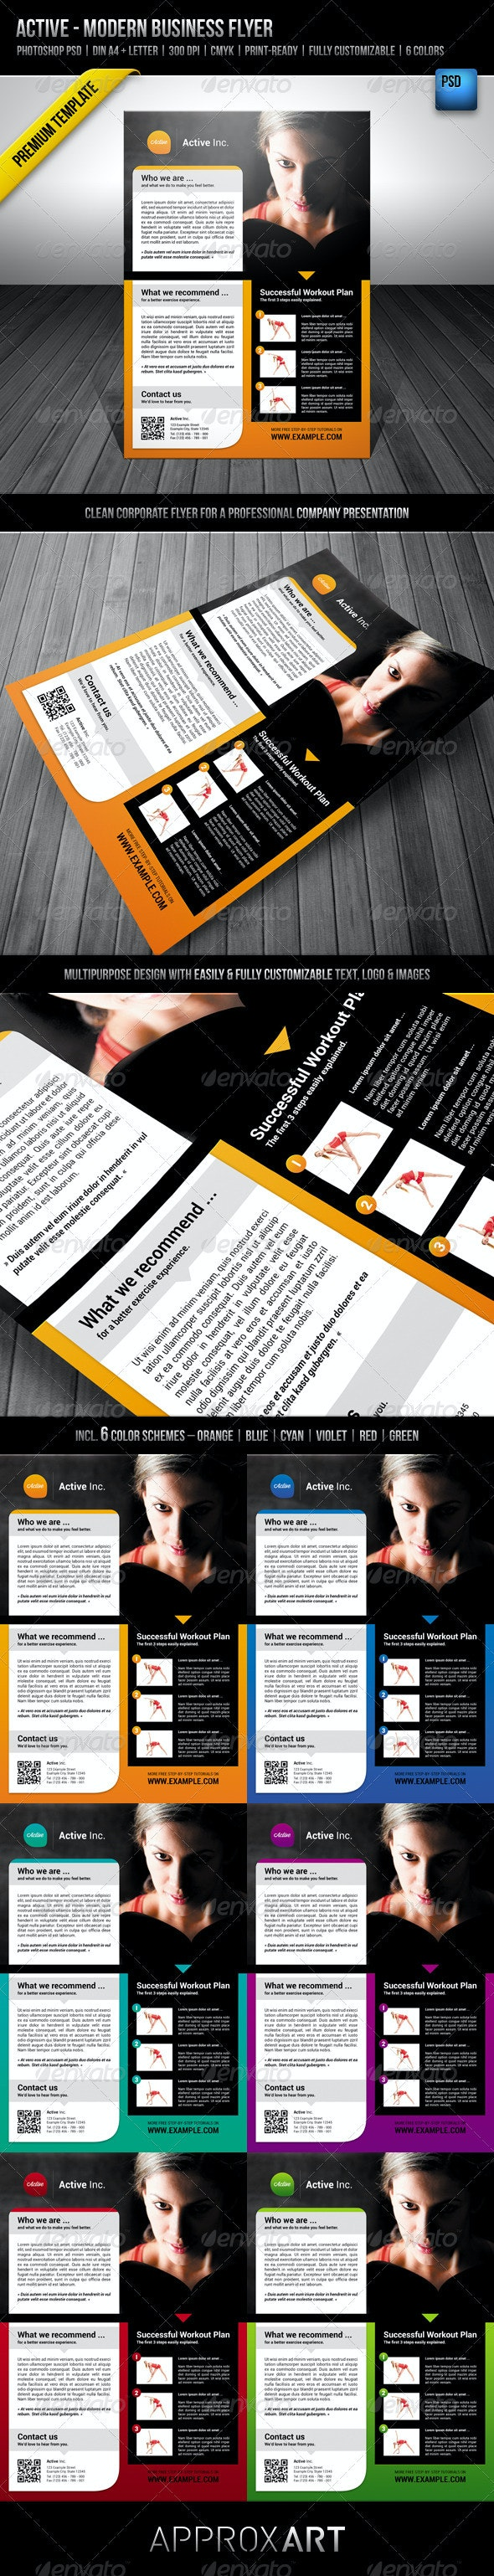 Active - Modern Business Flyer - Corporate Flyers